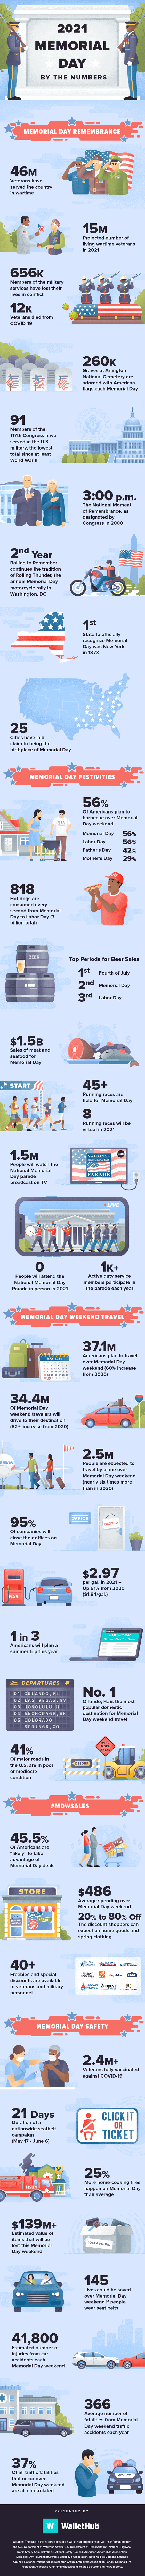 2021 memorial day by the numbers v6